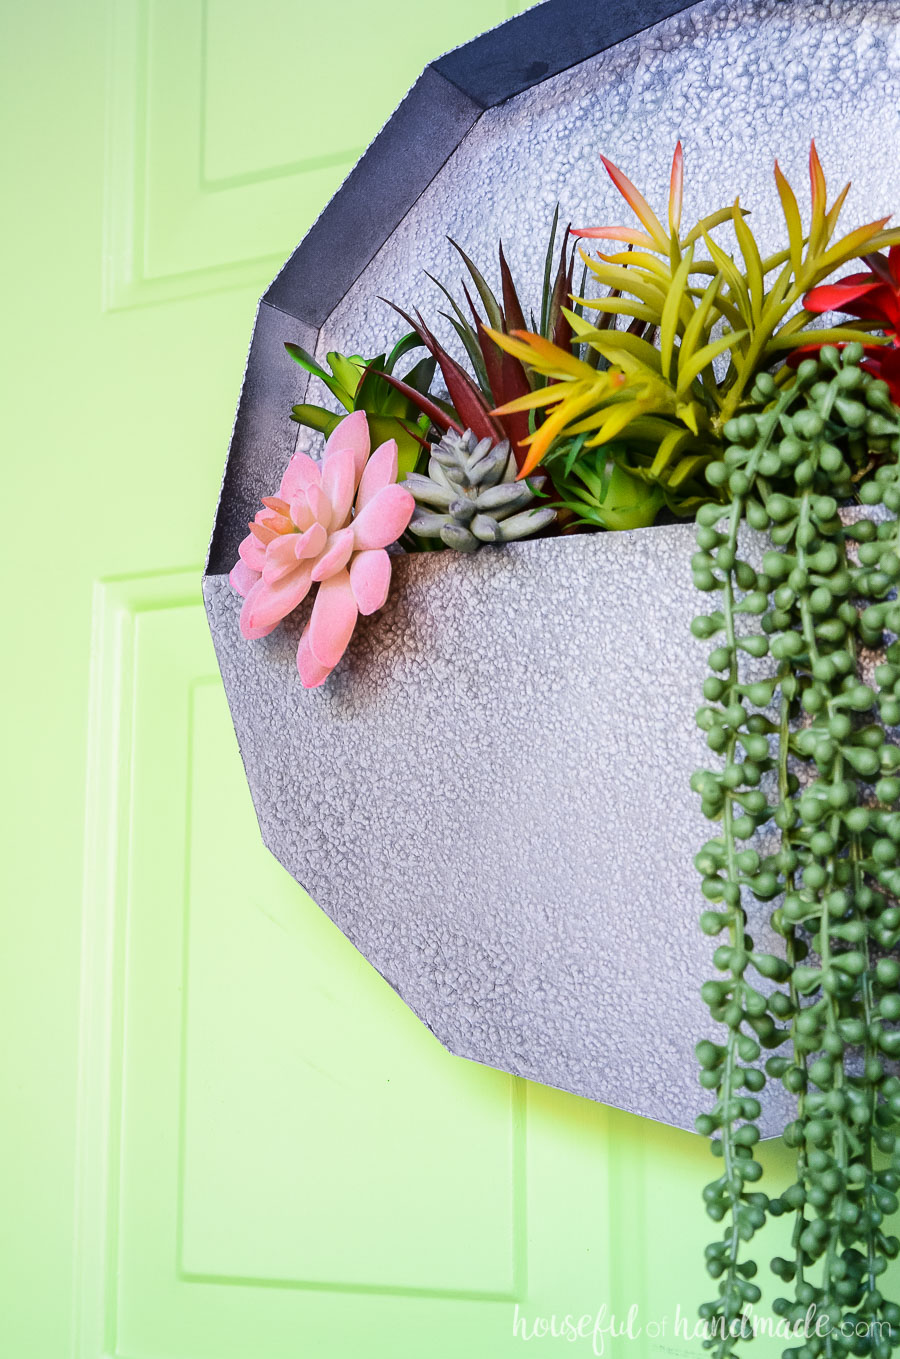 Faux metal succulent wall planter on a green door filled with fake succulents including string of pearl succulents hanging down.